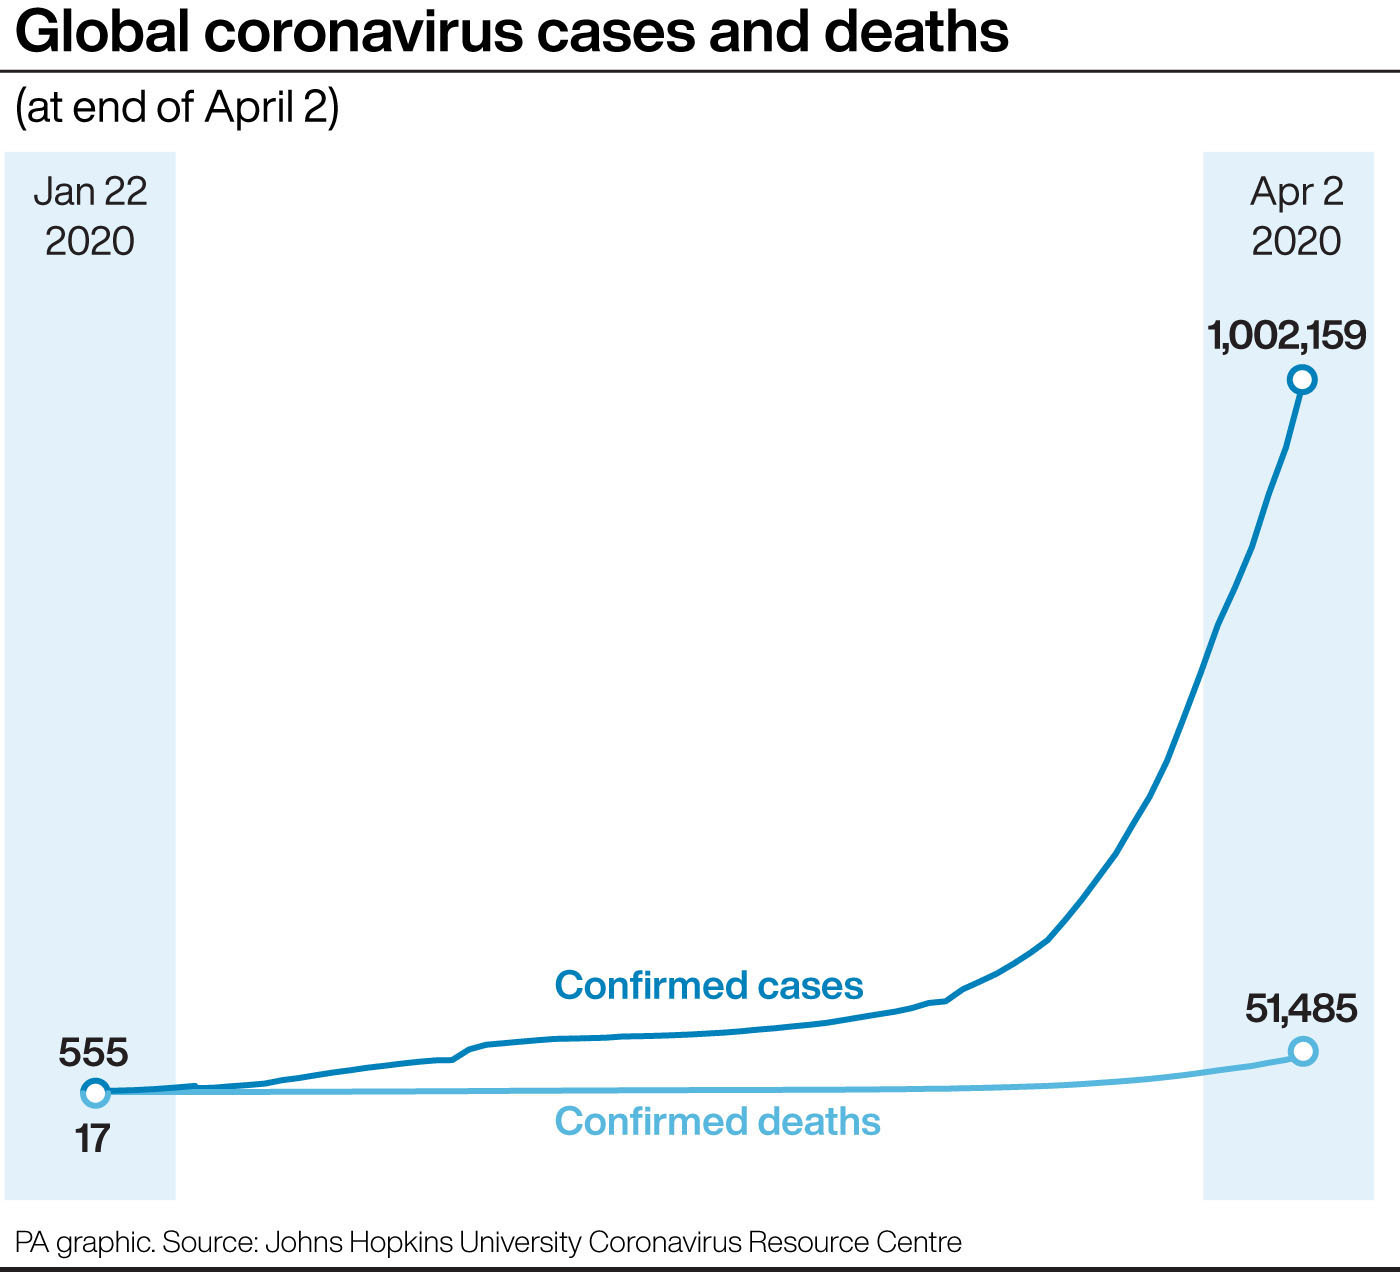 Confirmed COVID-19 cases reach 38,168 in UK, death toll exceeds 3,600 class=